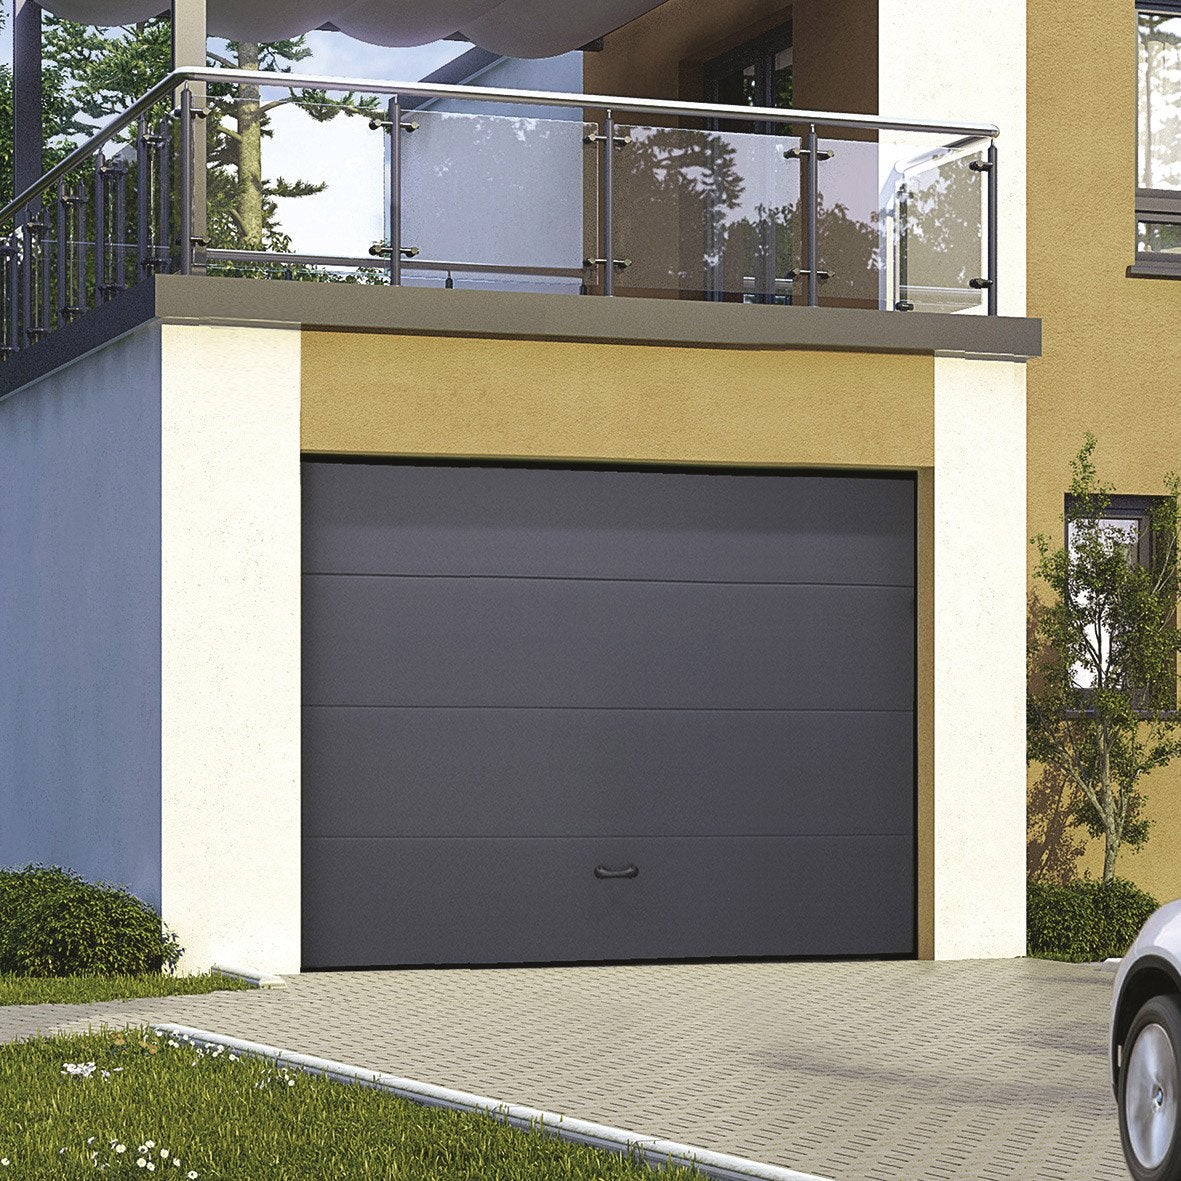 Porte de garage sectionnelle motoris e excellence rainures horizontales 2x3m - Leroy merlin porte garage sectionnelle ...